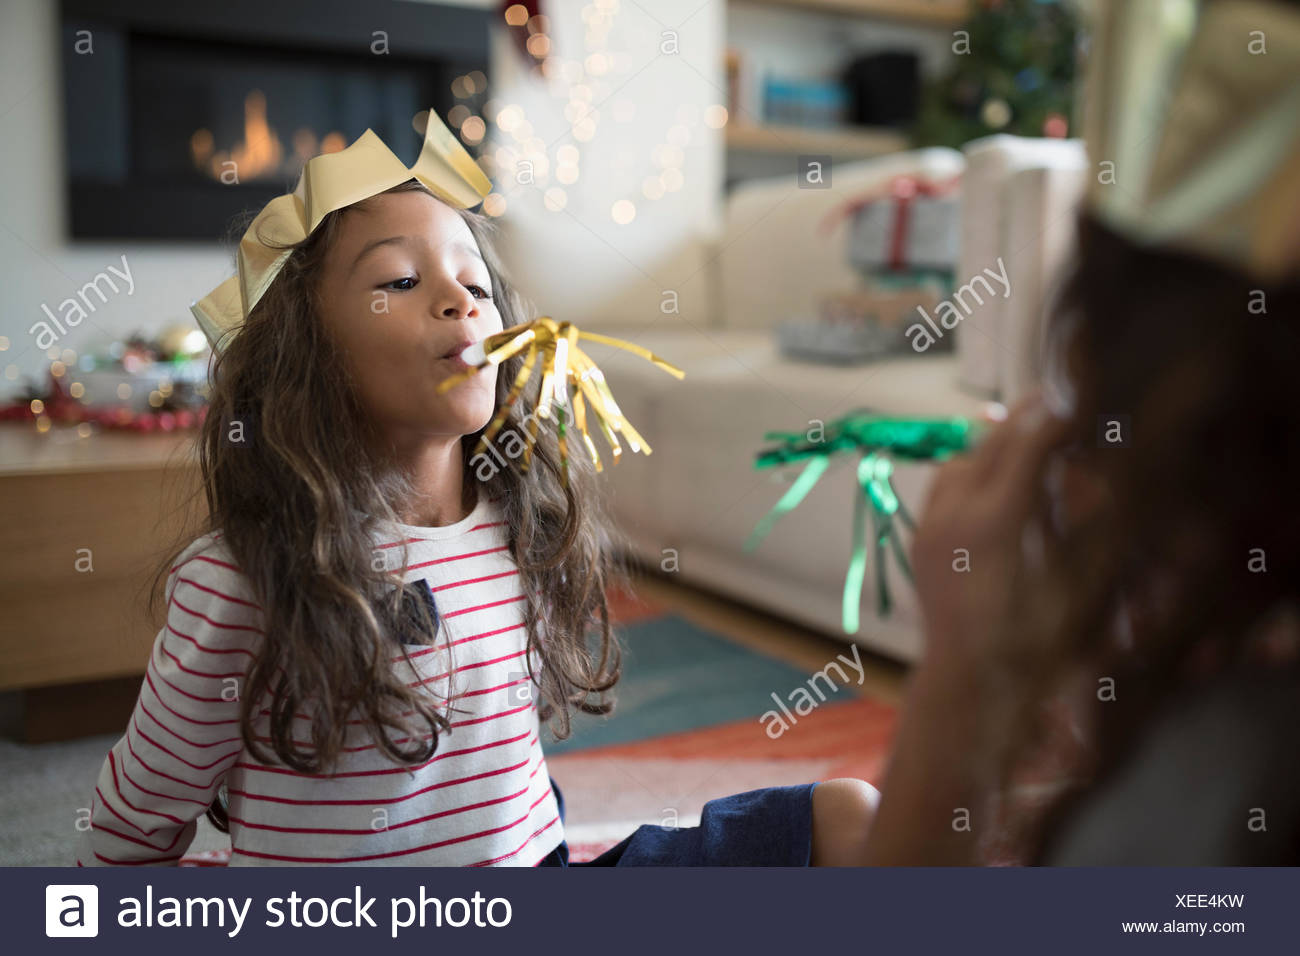 Sisters in paper Christmas crowns playing with party favors - Stock Image